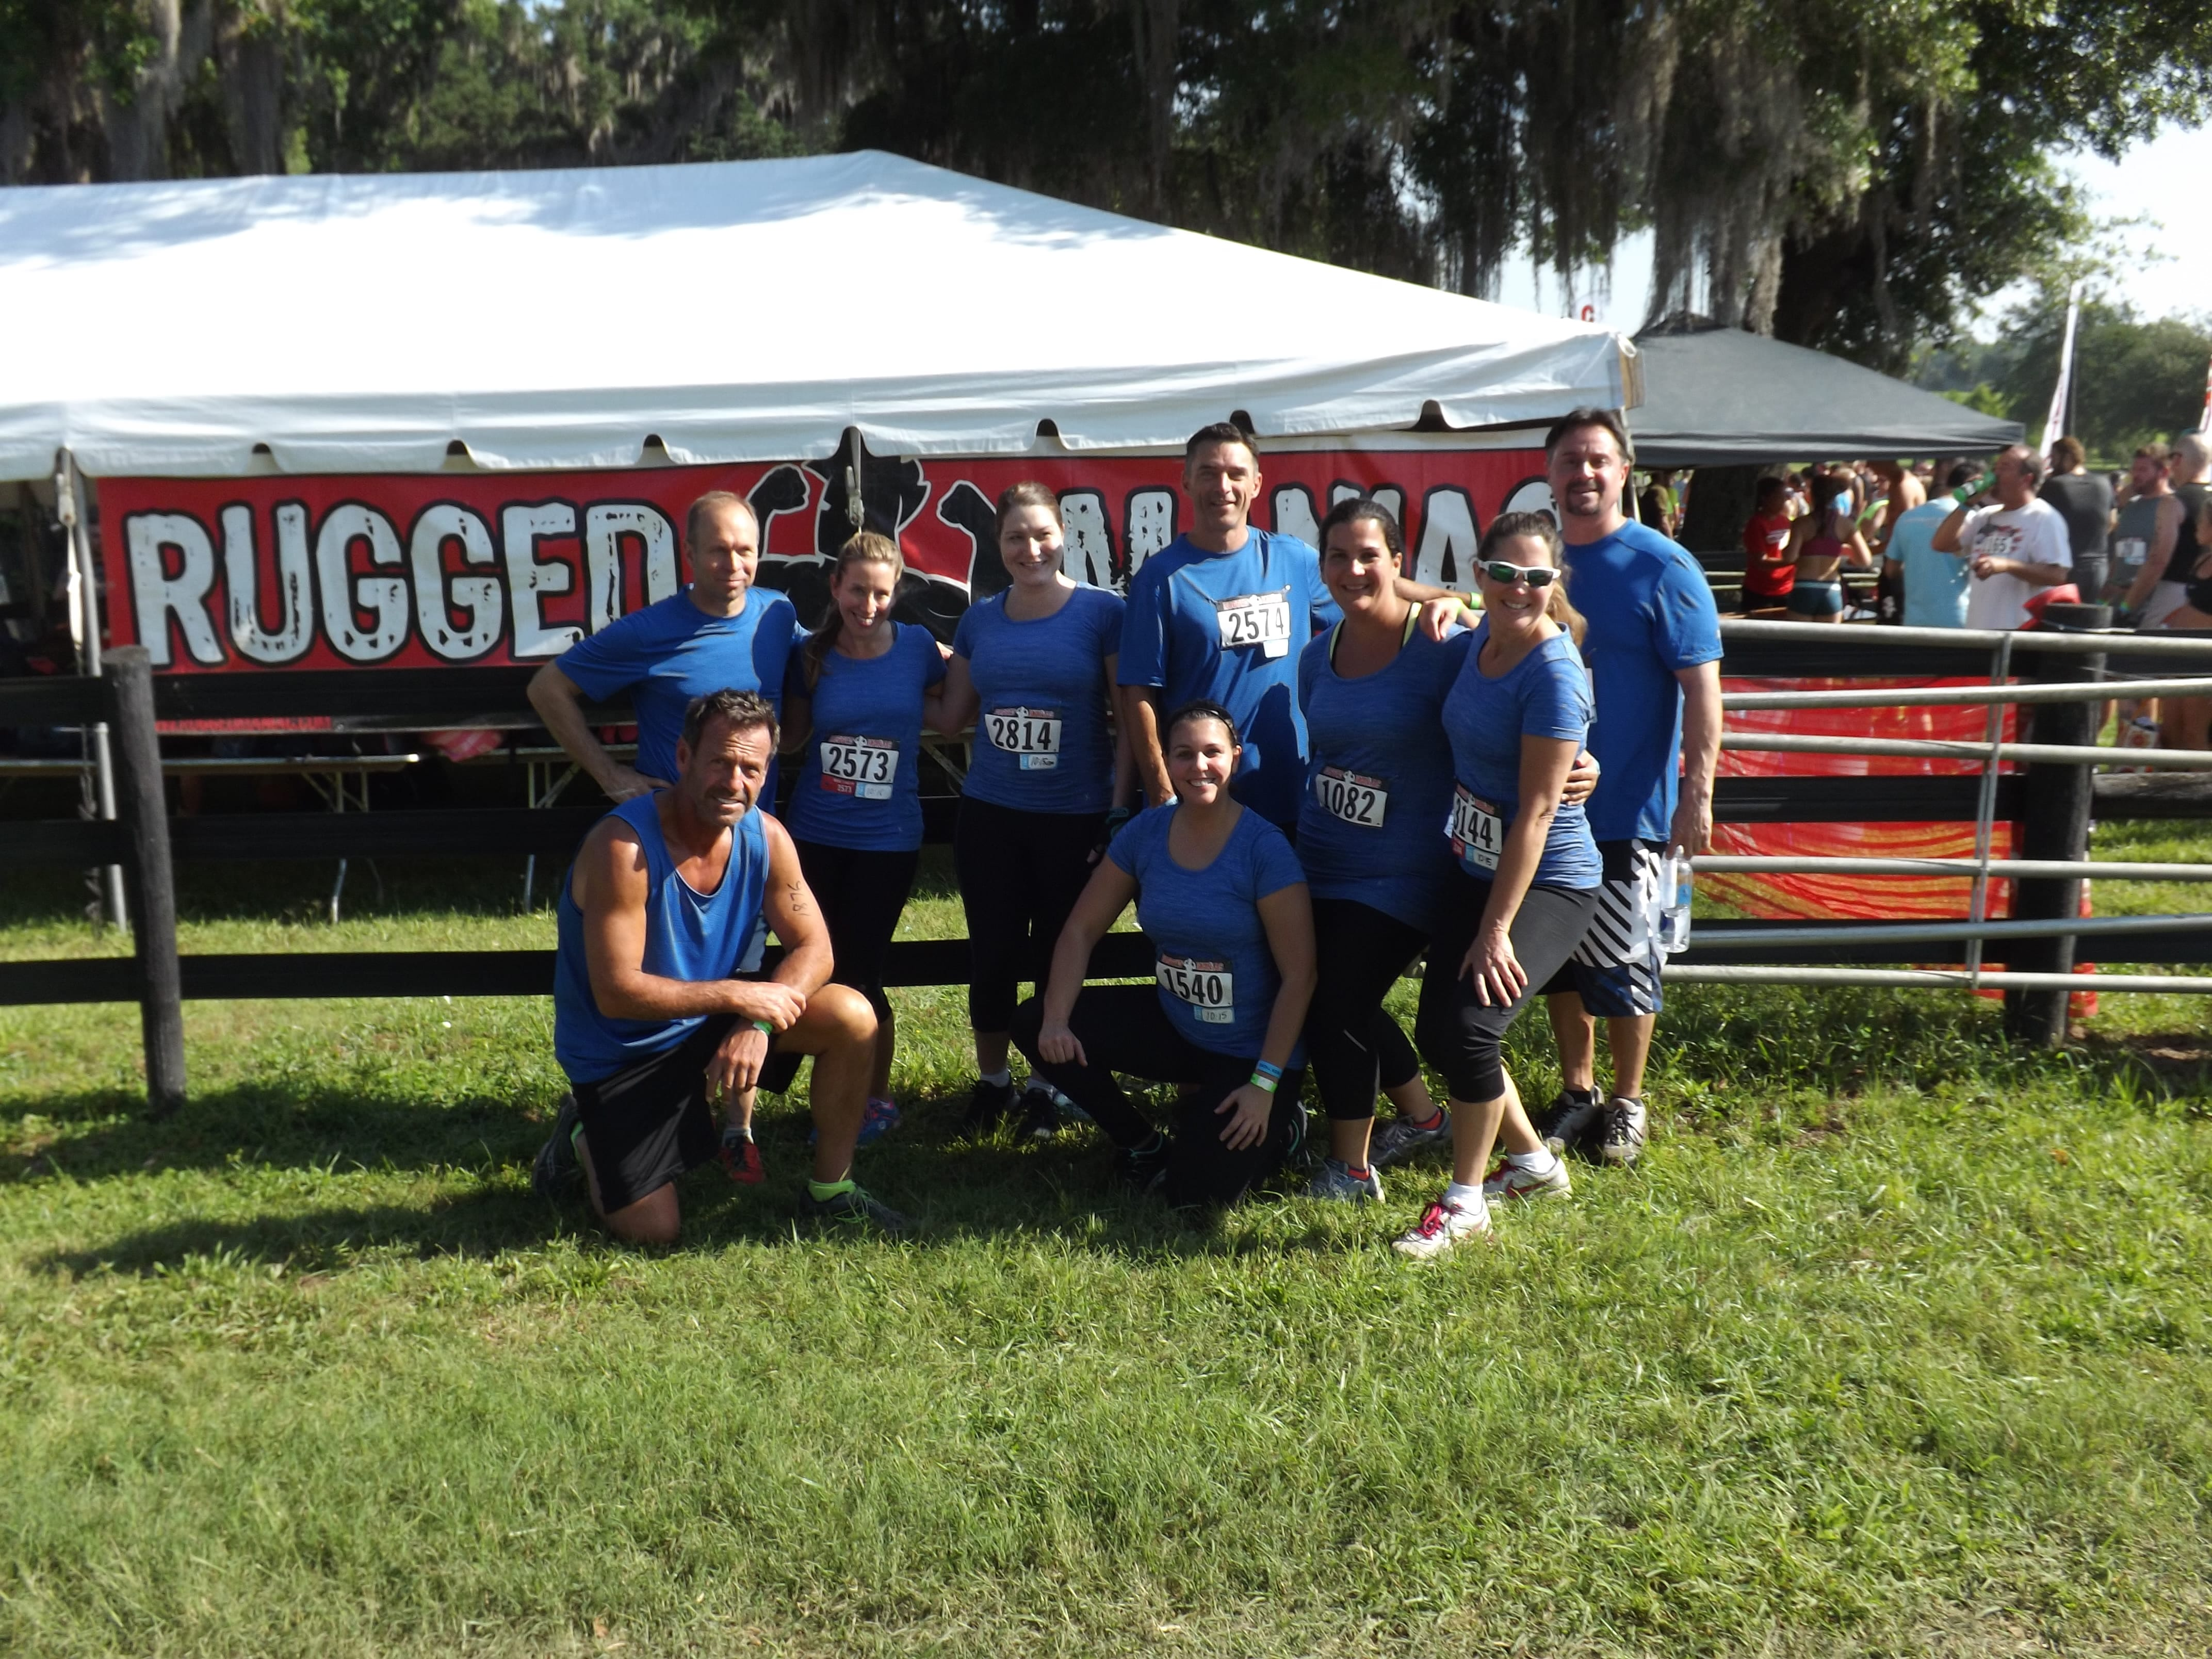 Lakeland Participates in Rugged Maniac Obstacle Race